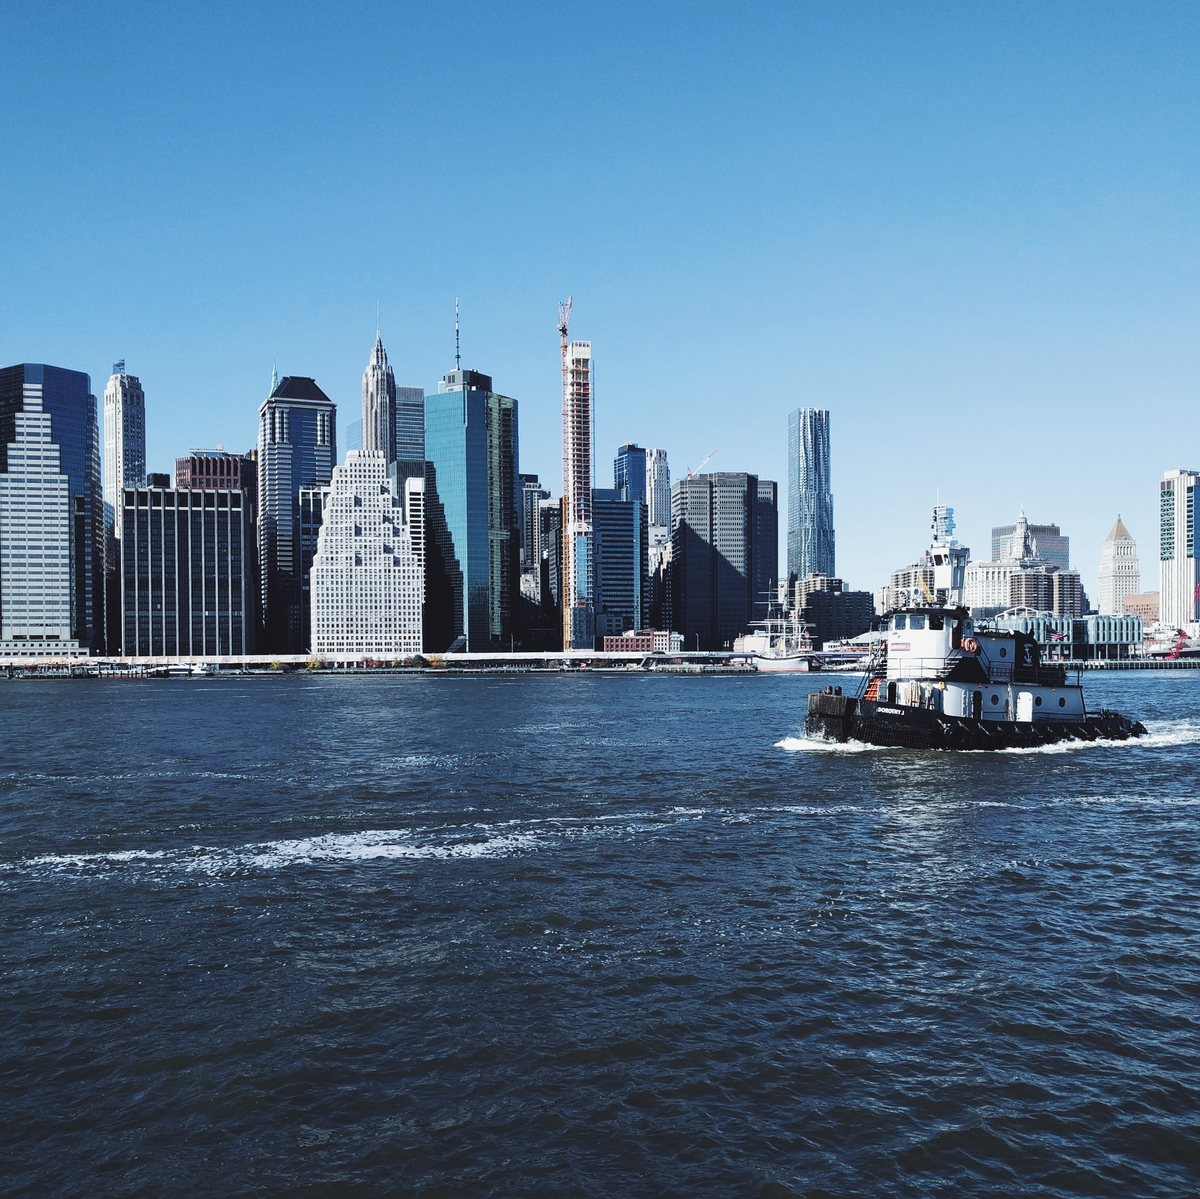 New York and a ship going